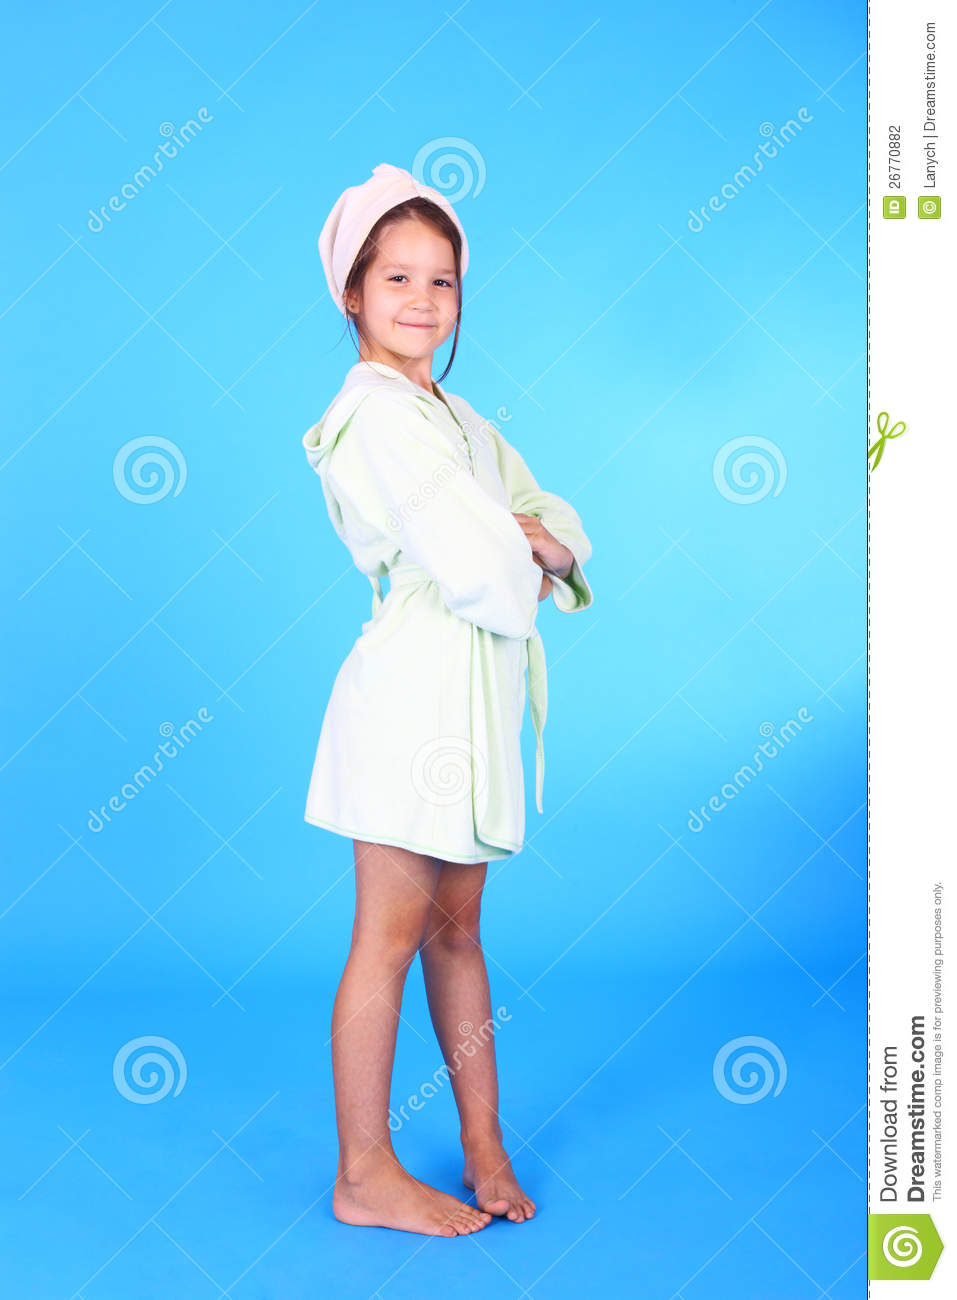 Girl in the bath robe stock photo. Image of infant, health ...